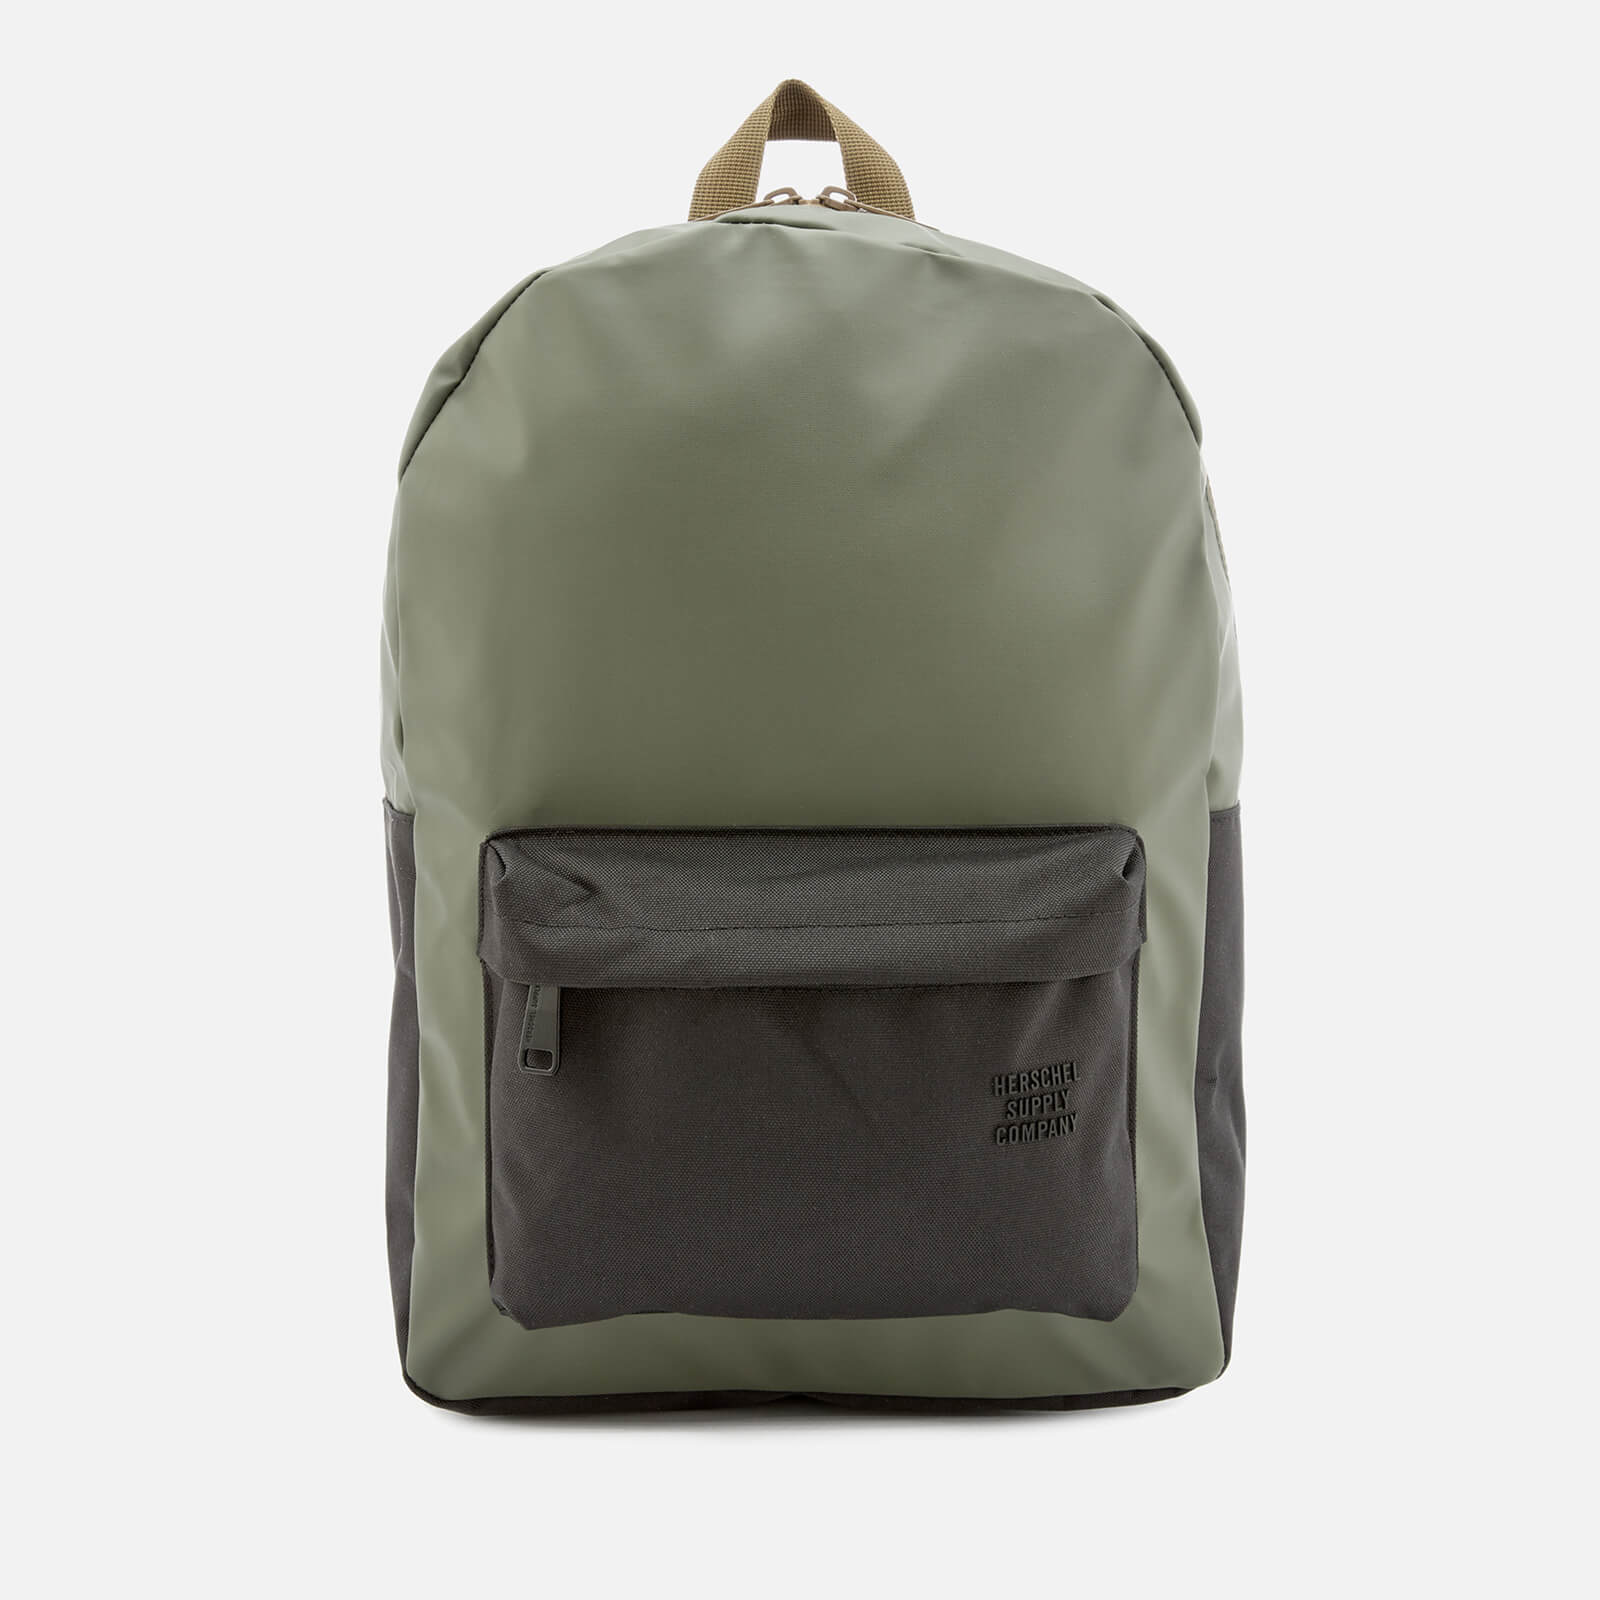 c3bca845ac7 Herschel Supply Co. Men's Winlaw Backpack - Beetle/Black/Gothic Olive -  Free UK Delivery over £50